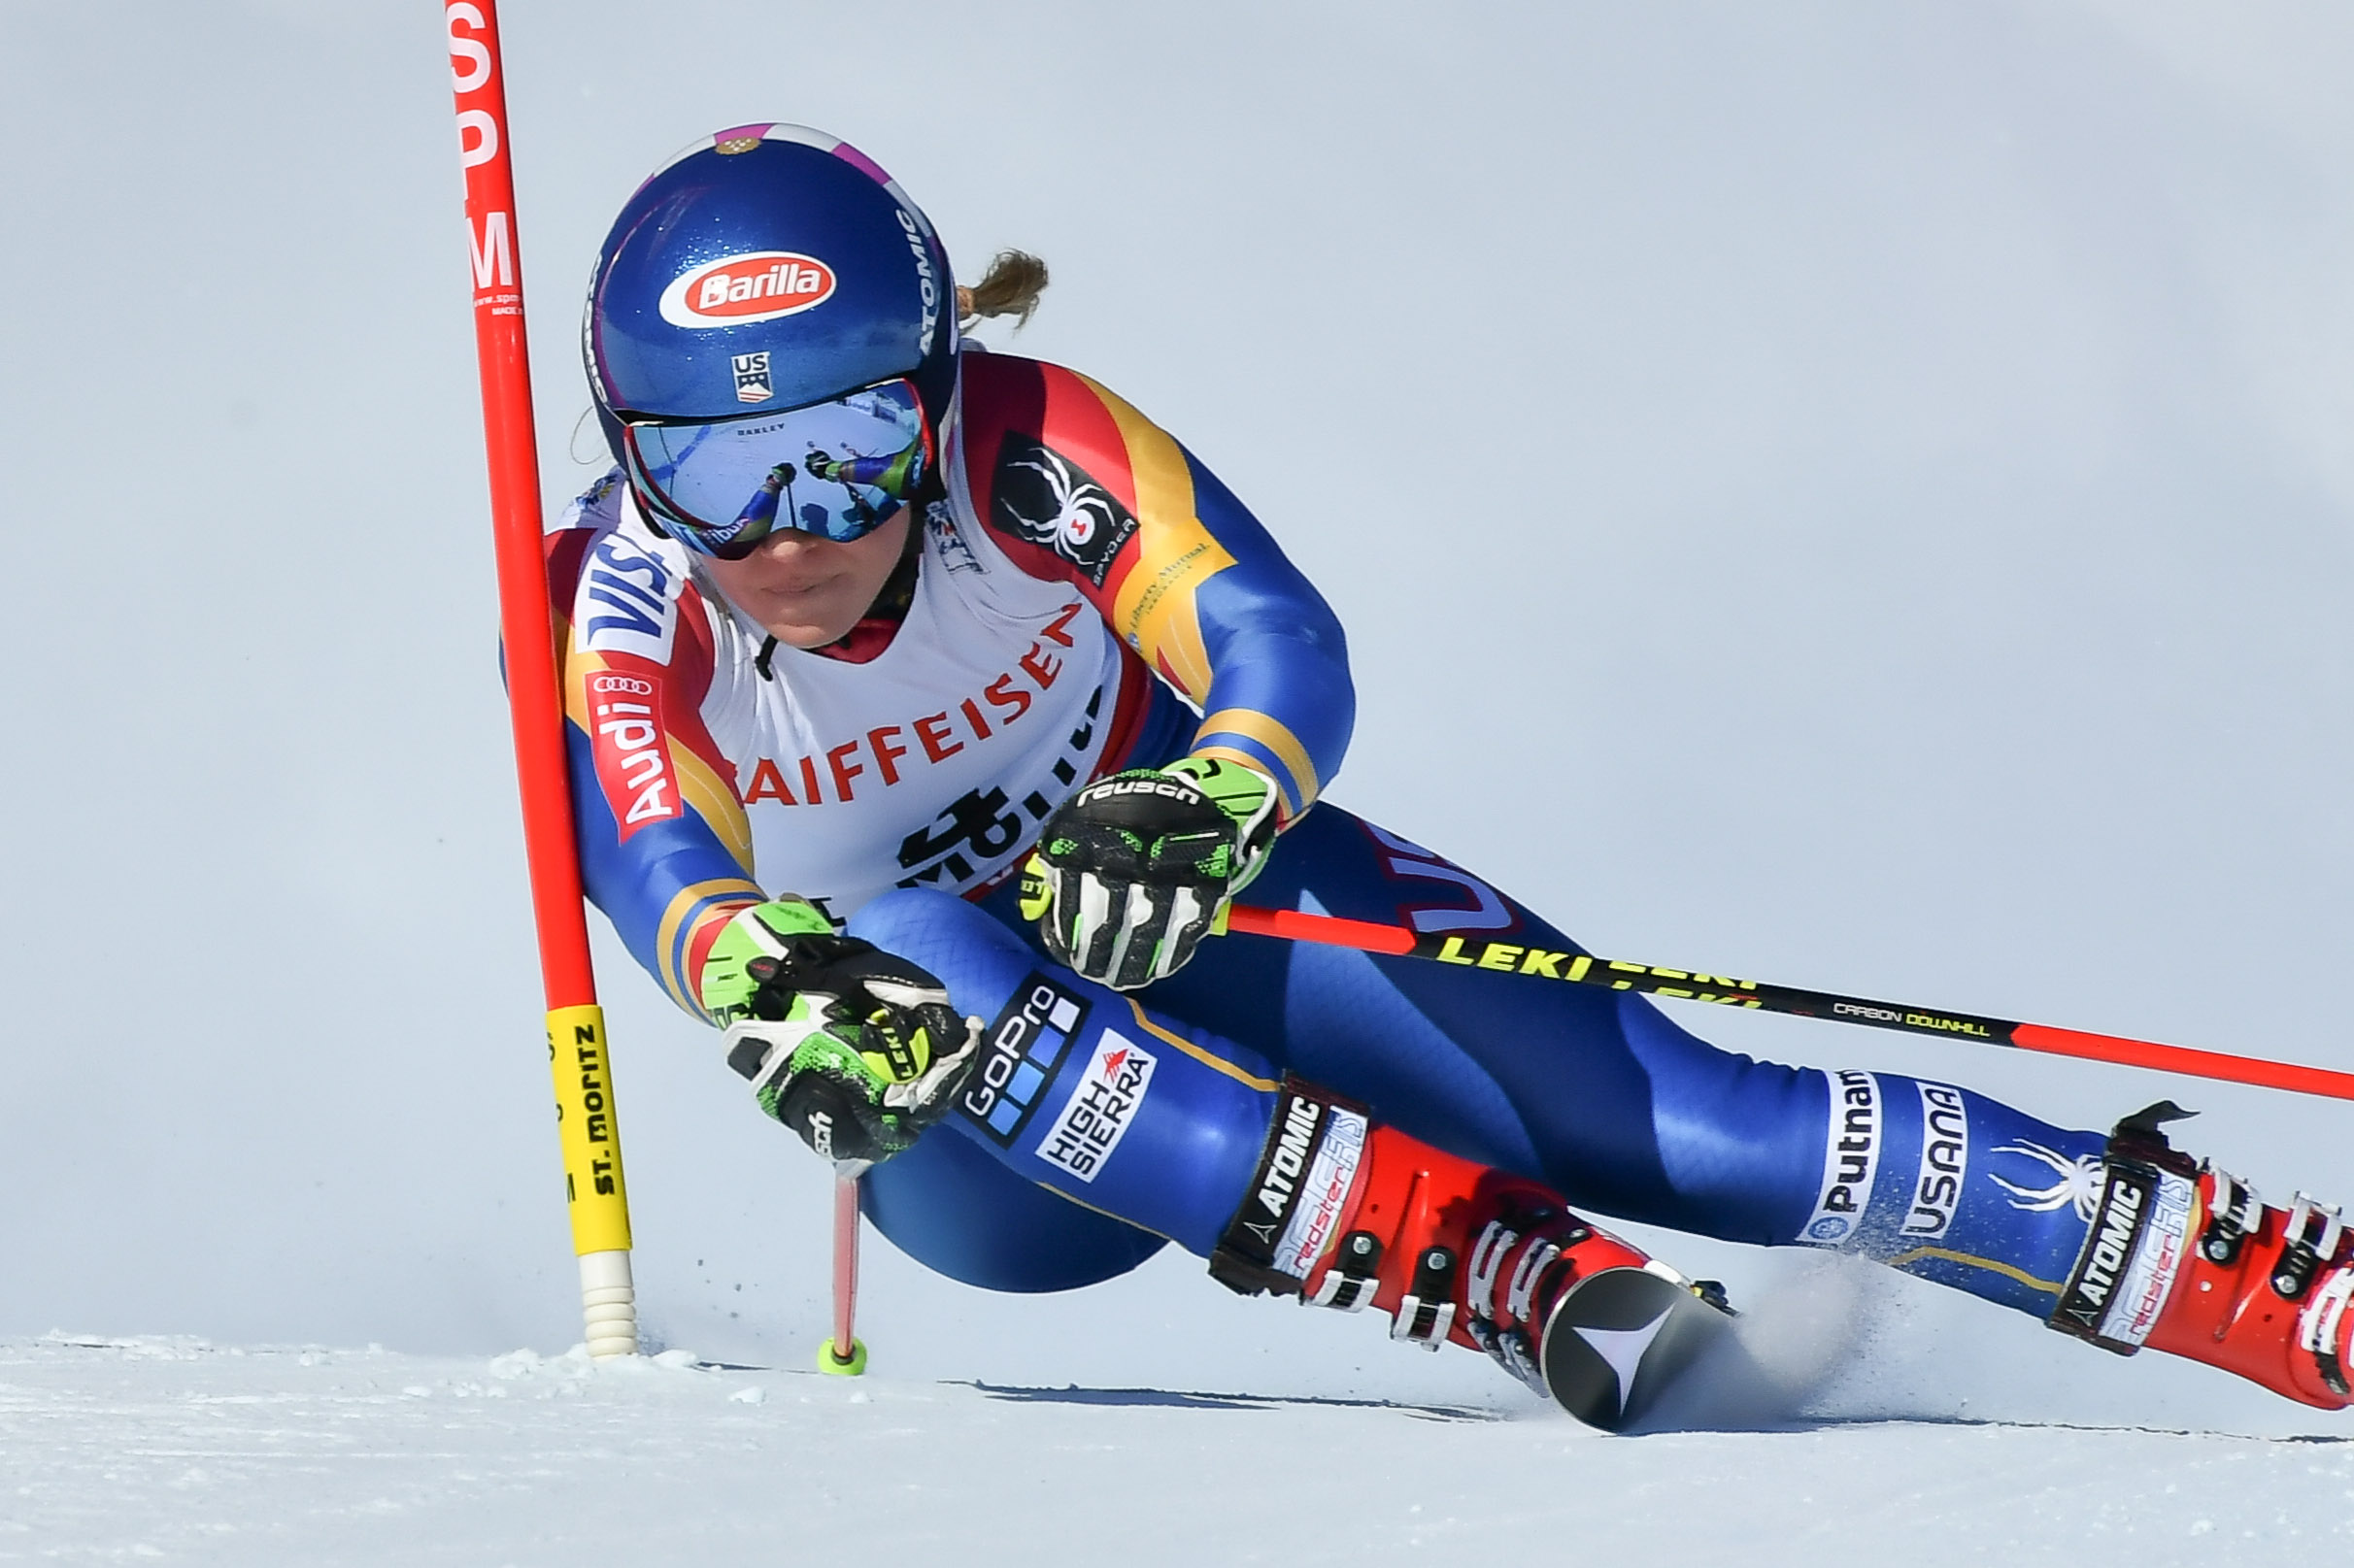 Skiing 2017: Alpine World Ski Championships - 16 Feb